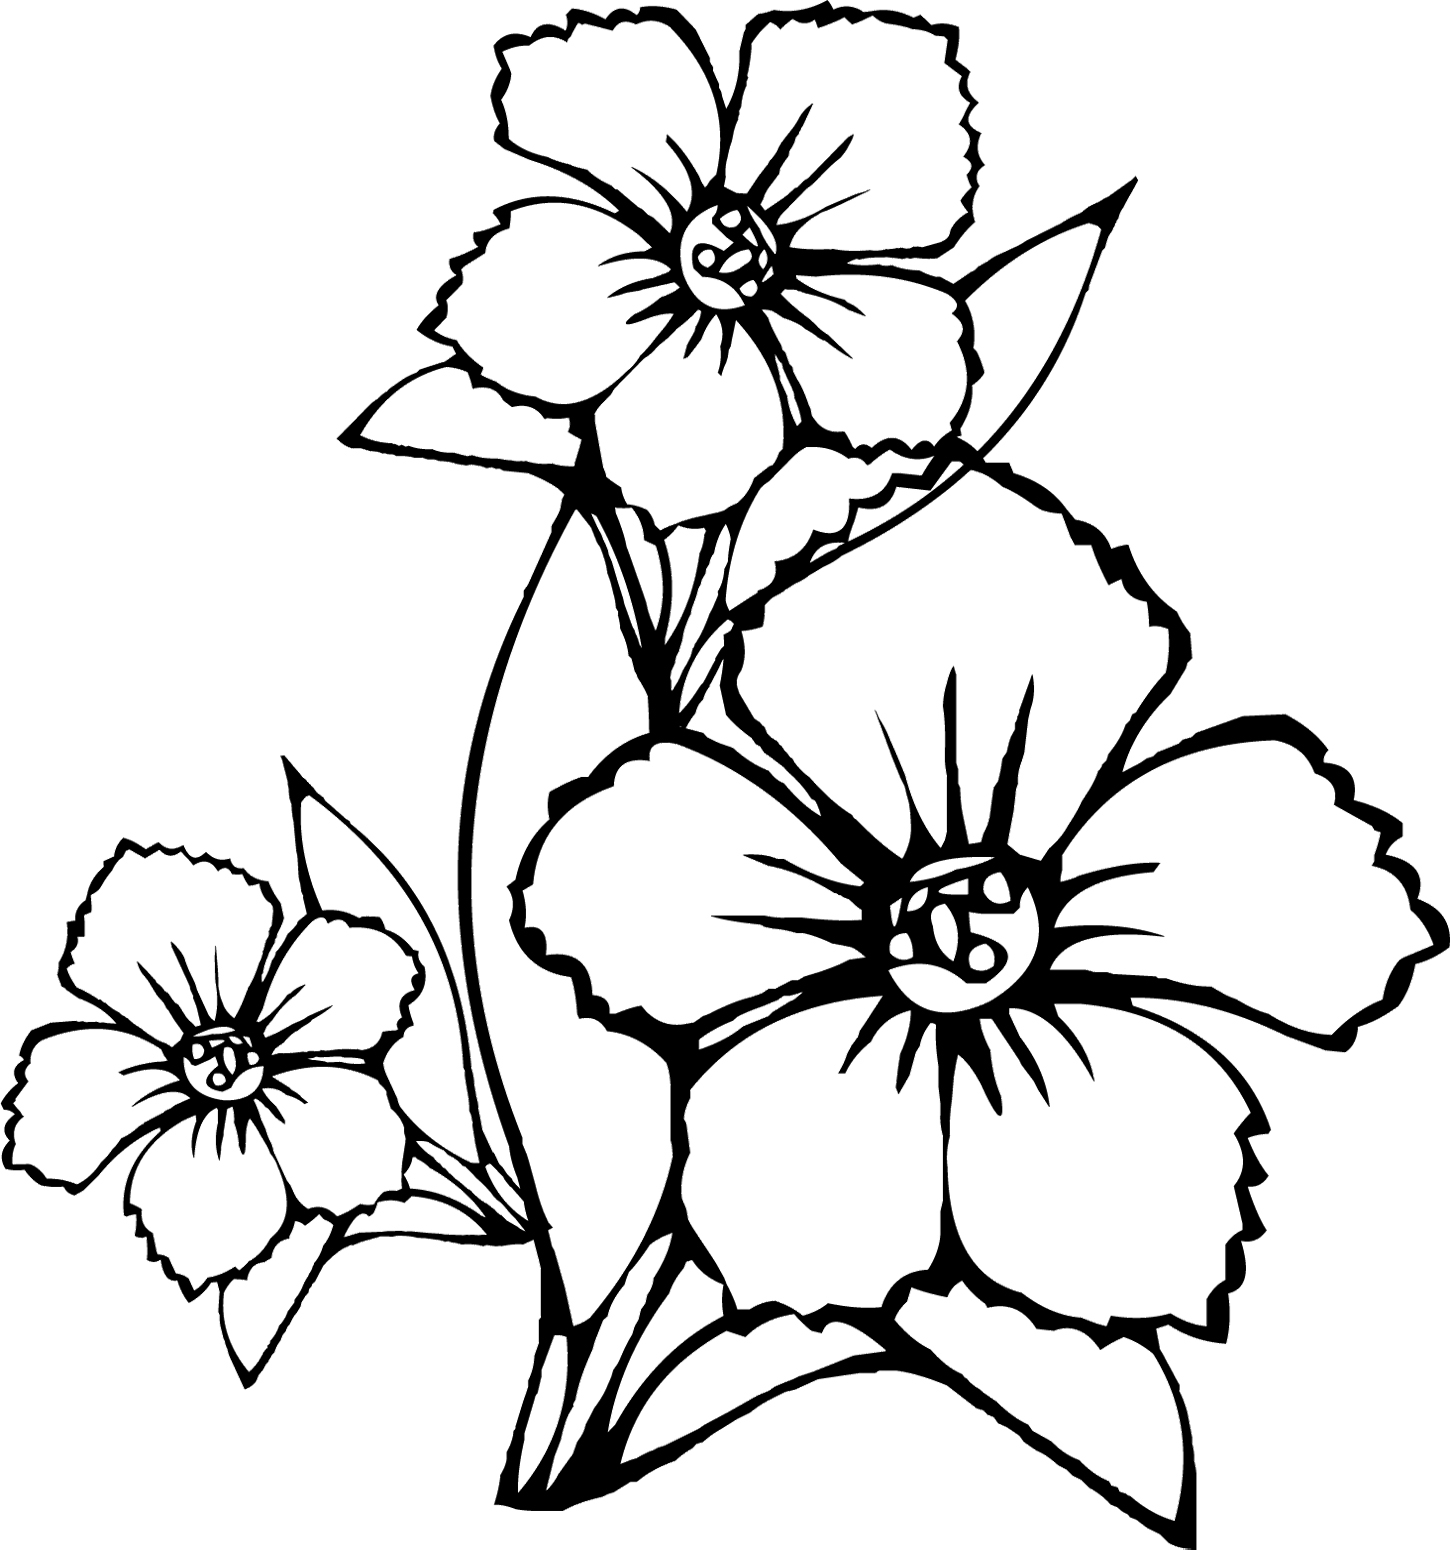 Vanilla Flower Drawing at GetDrawings.com | Free for personal use ...